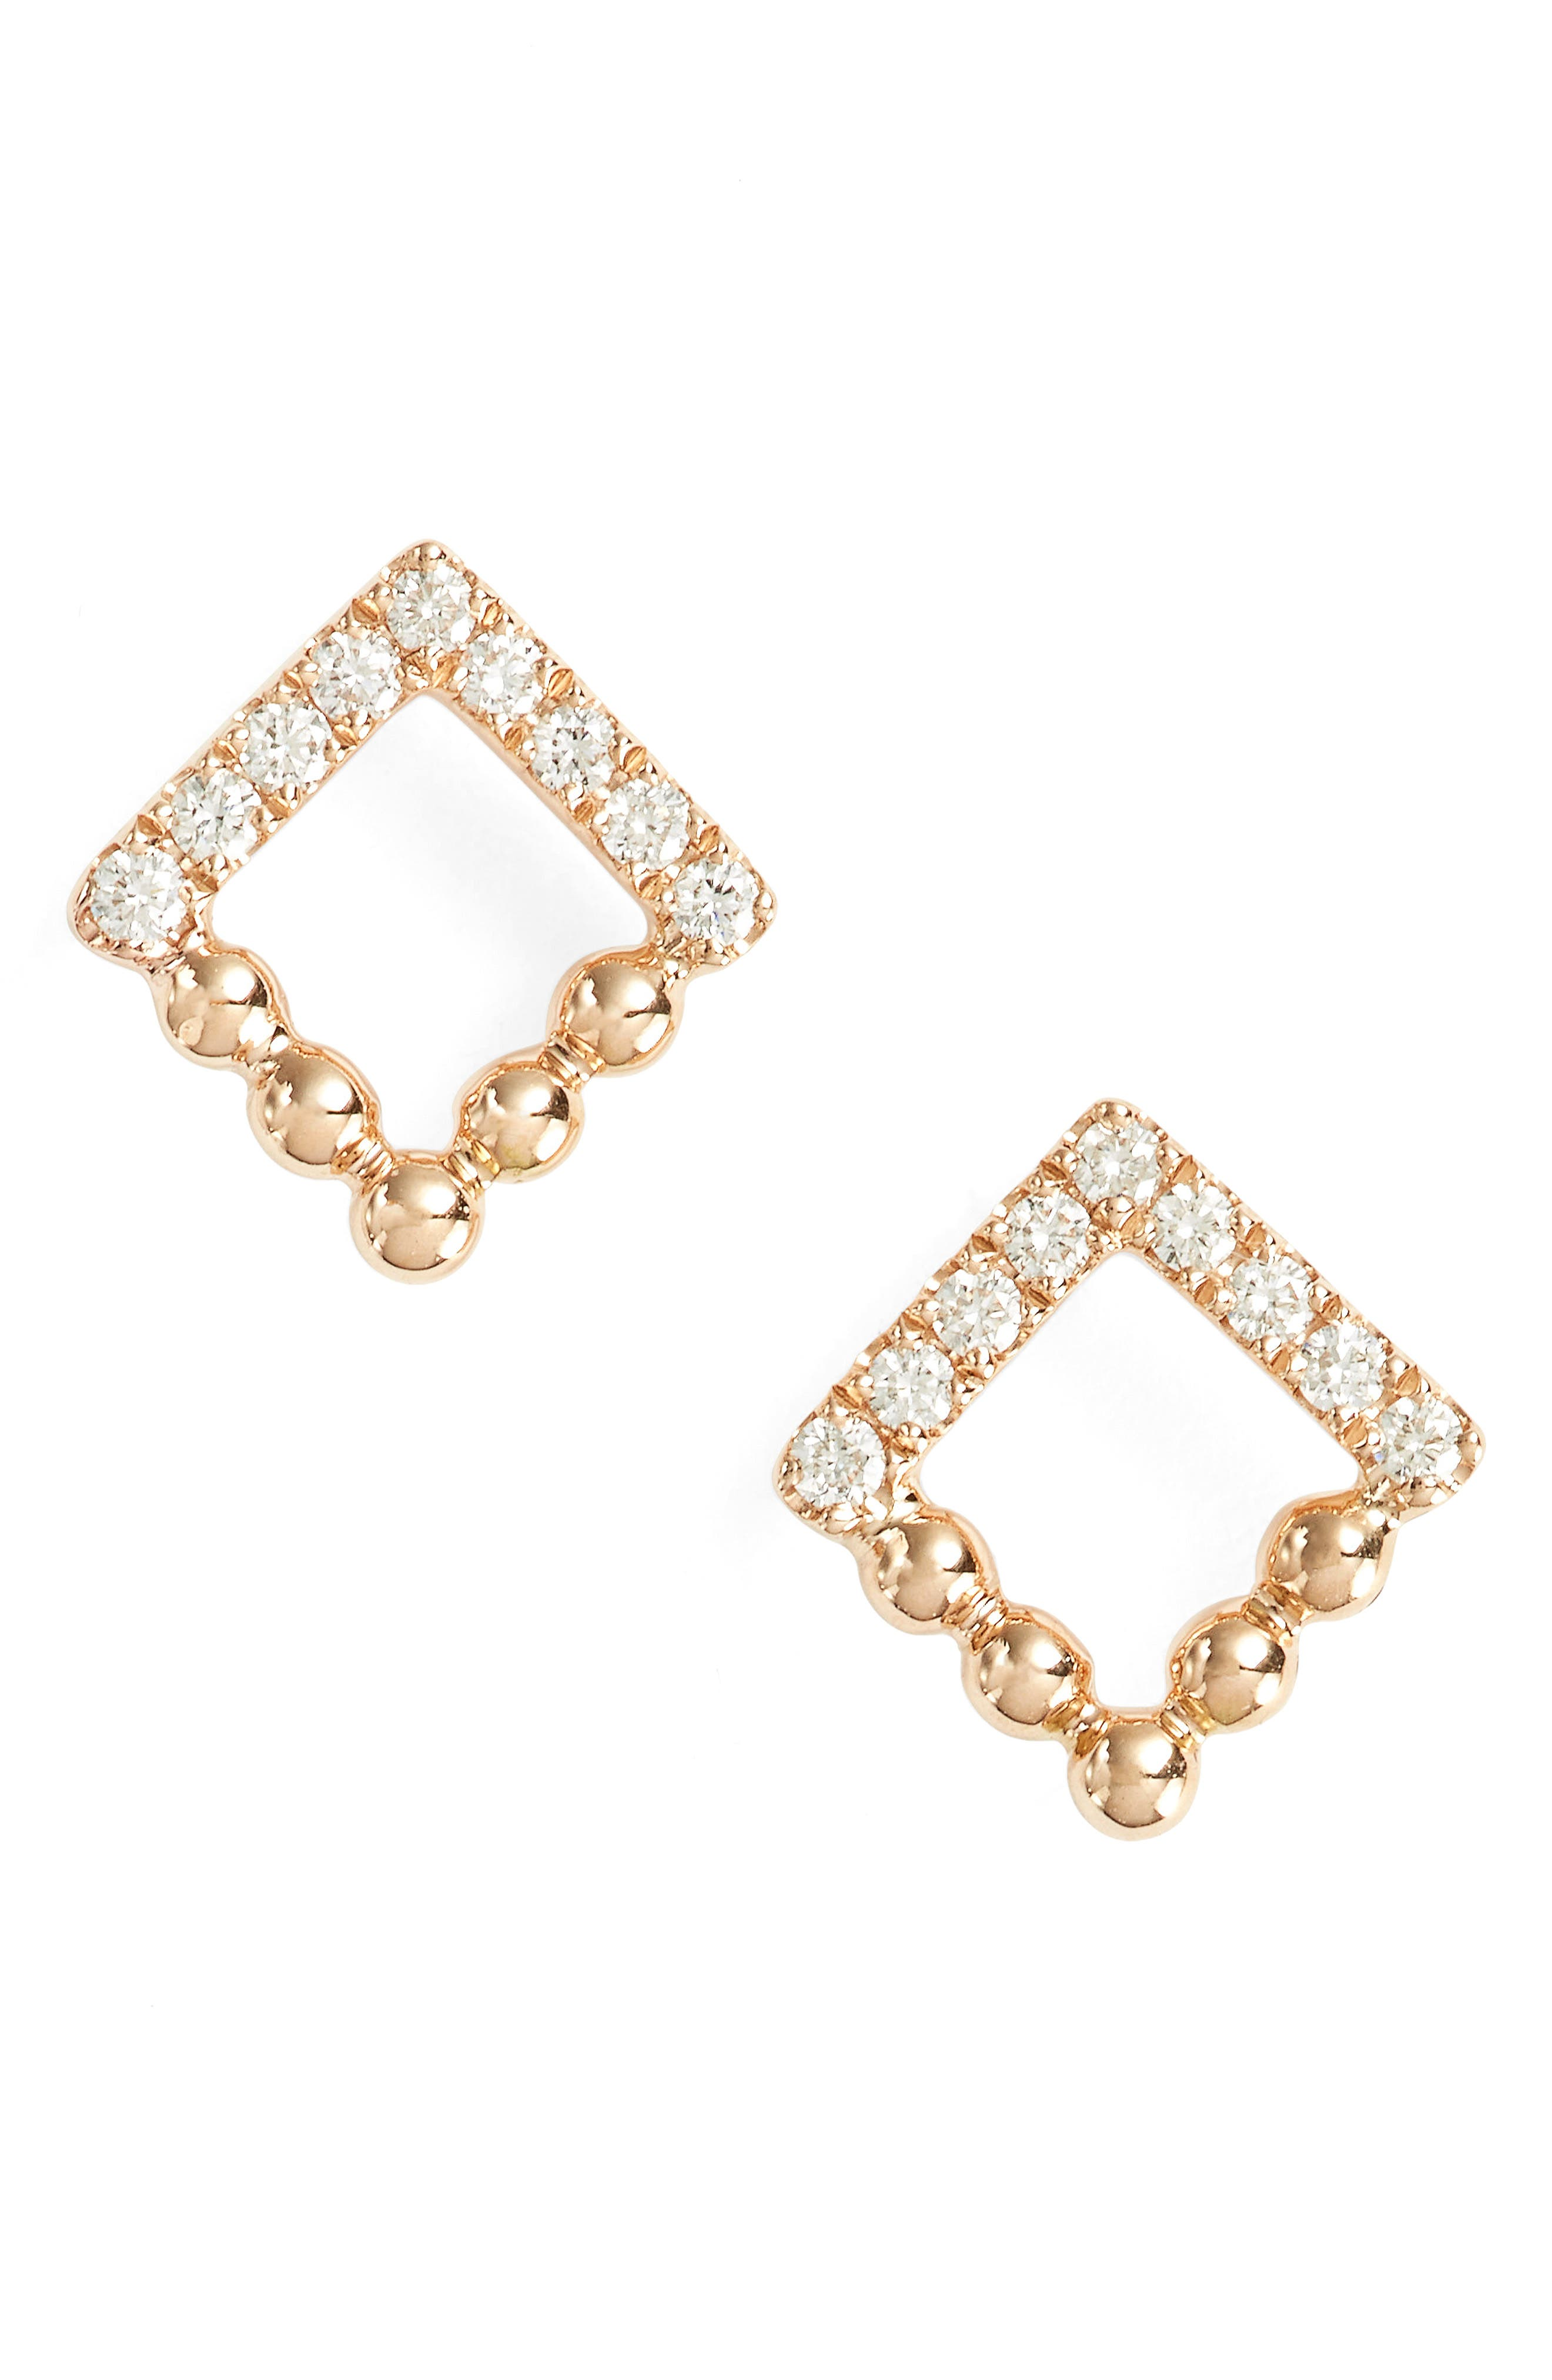 Dana Rebecca Designs Poppy Rae Square Diamond Stud Earrings